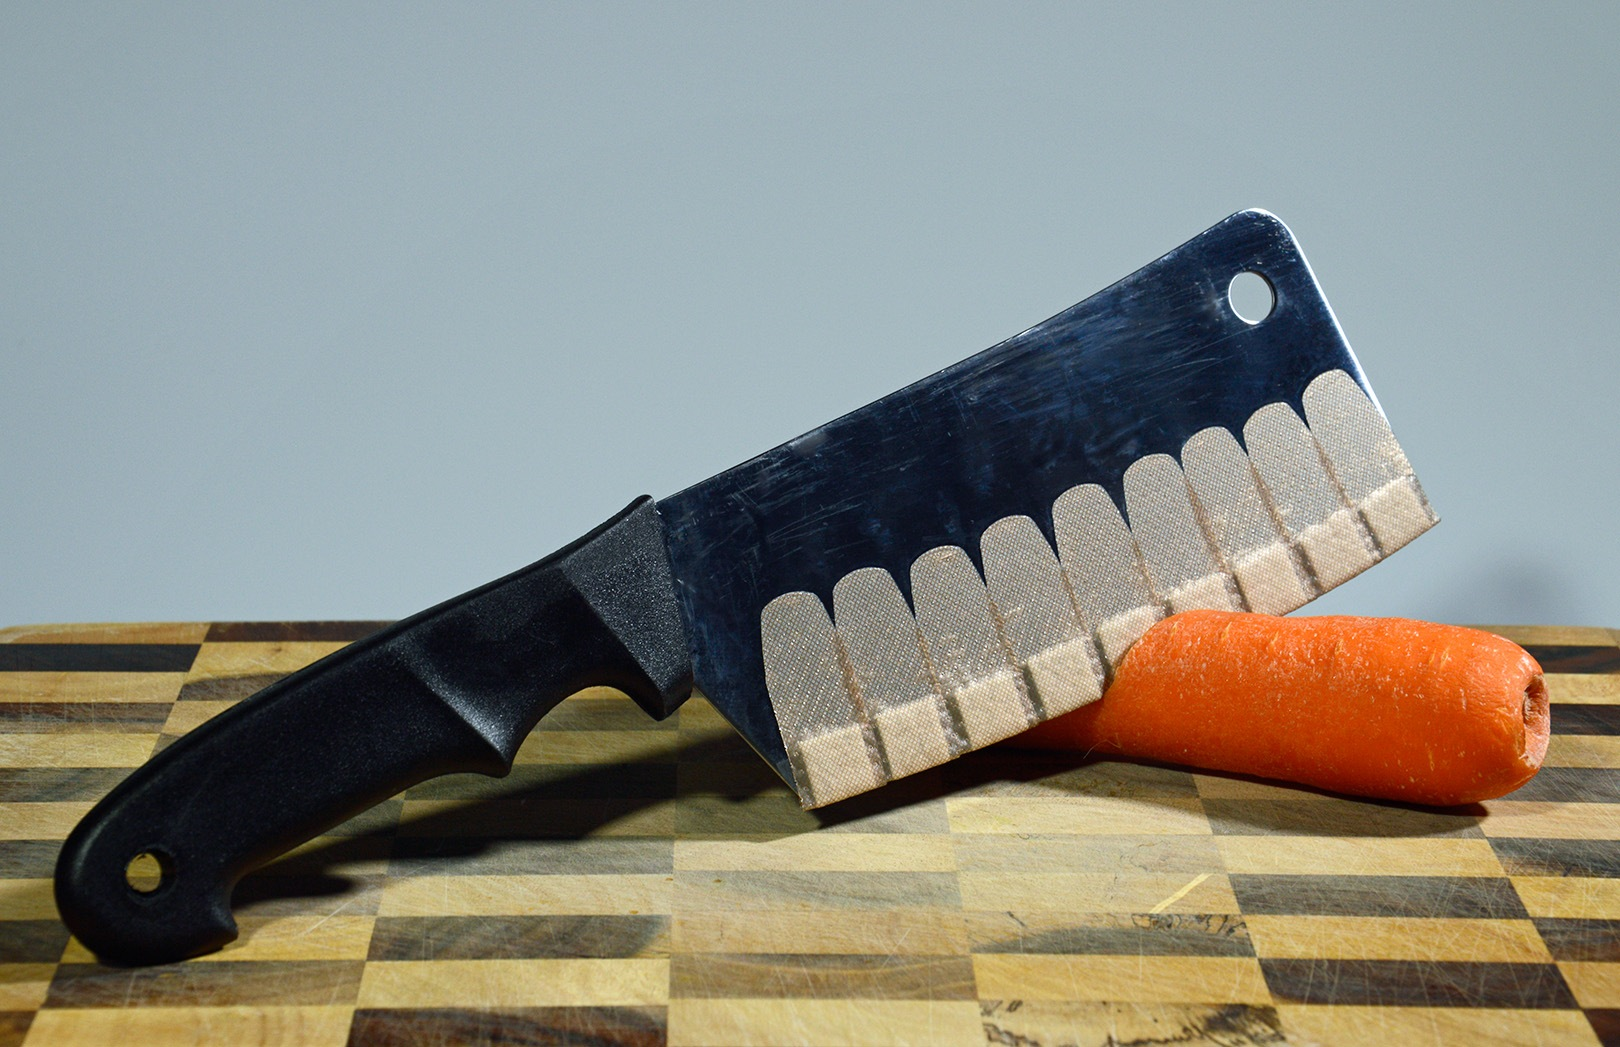 Safe knife by Francis Lappe